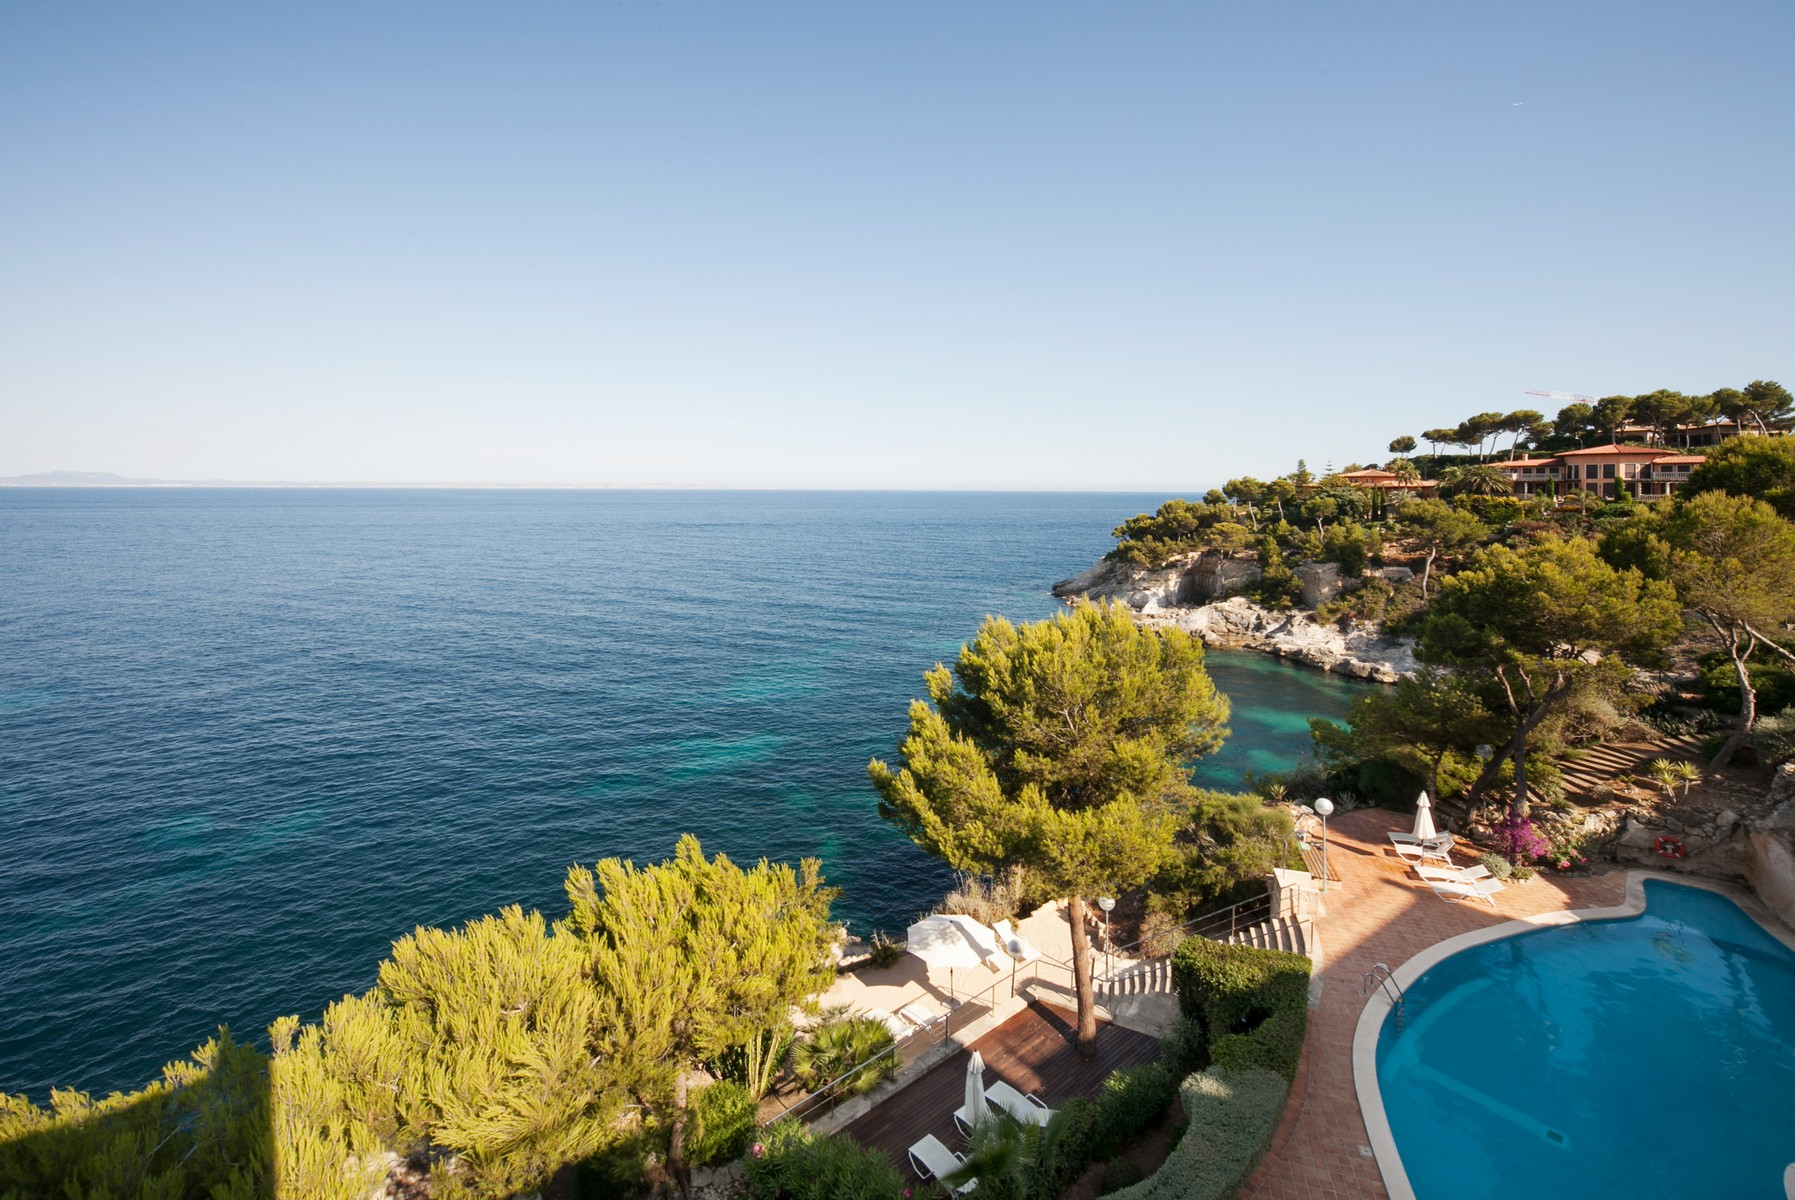 Single Family Home for Sale at Stunning penthouse in Cala Vinyes Palma Nova, Mallorca, 07184 Spain